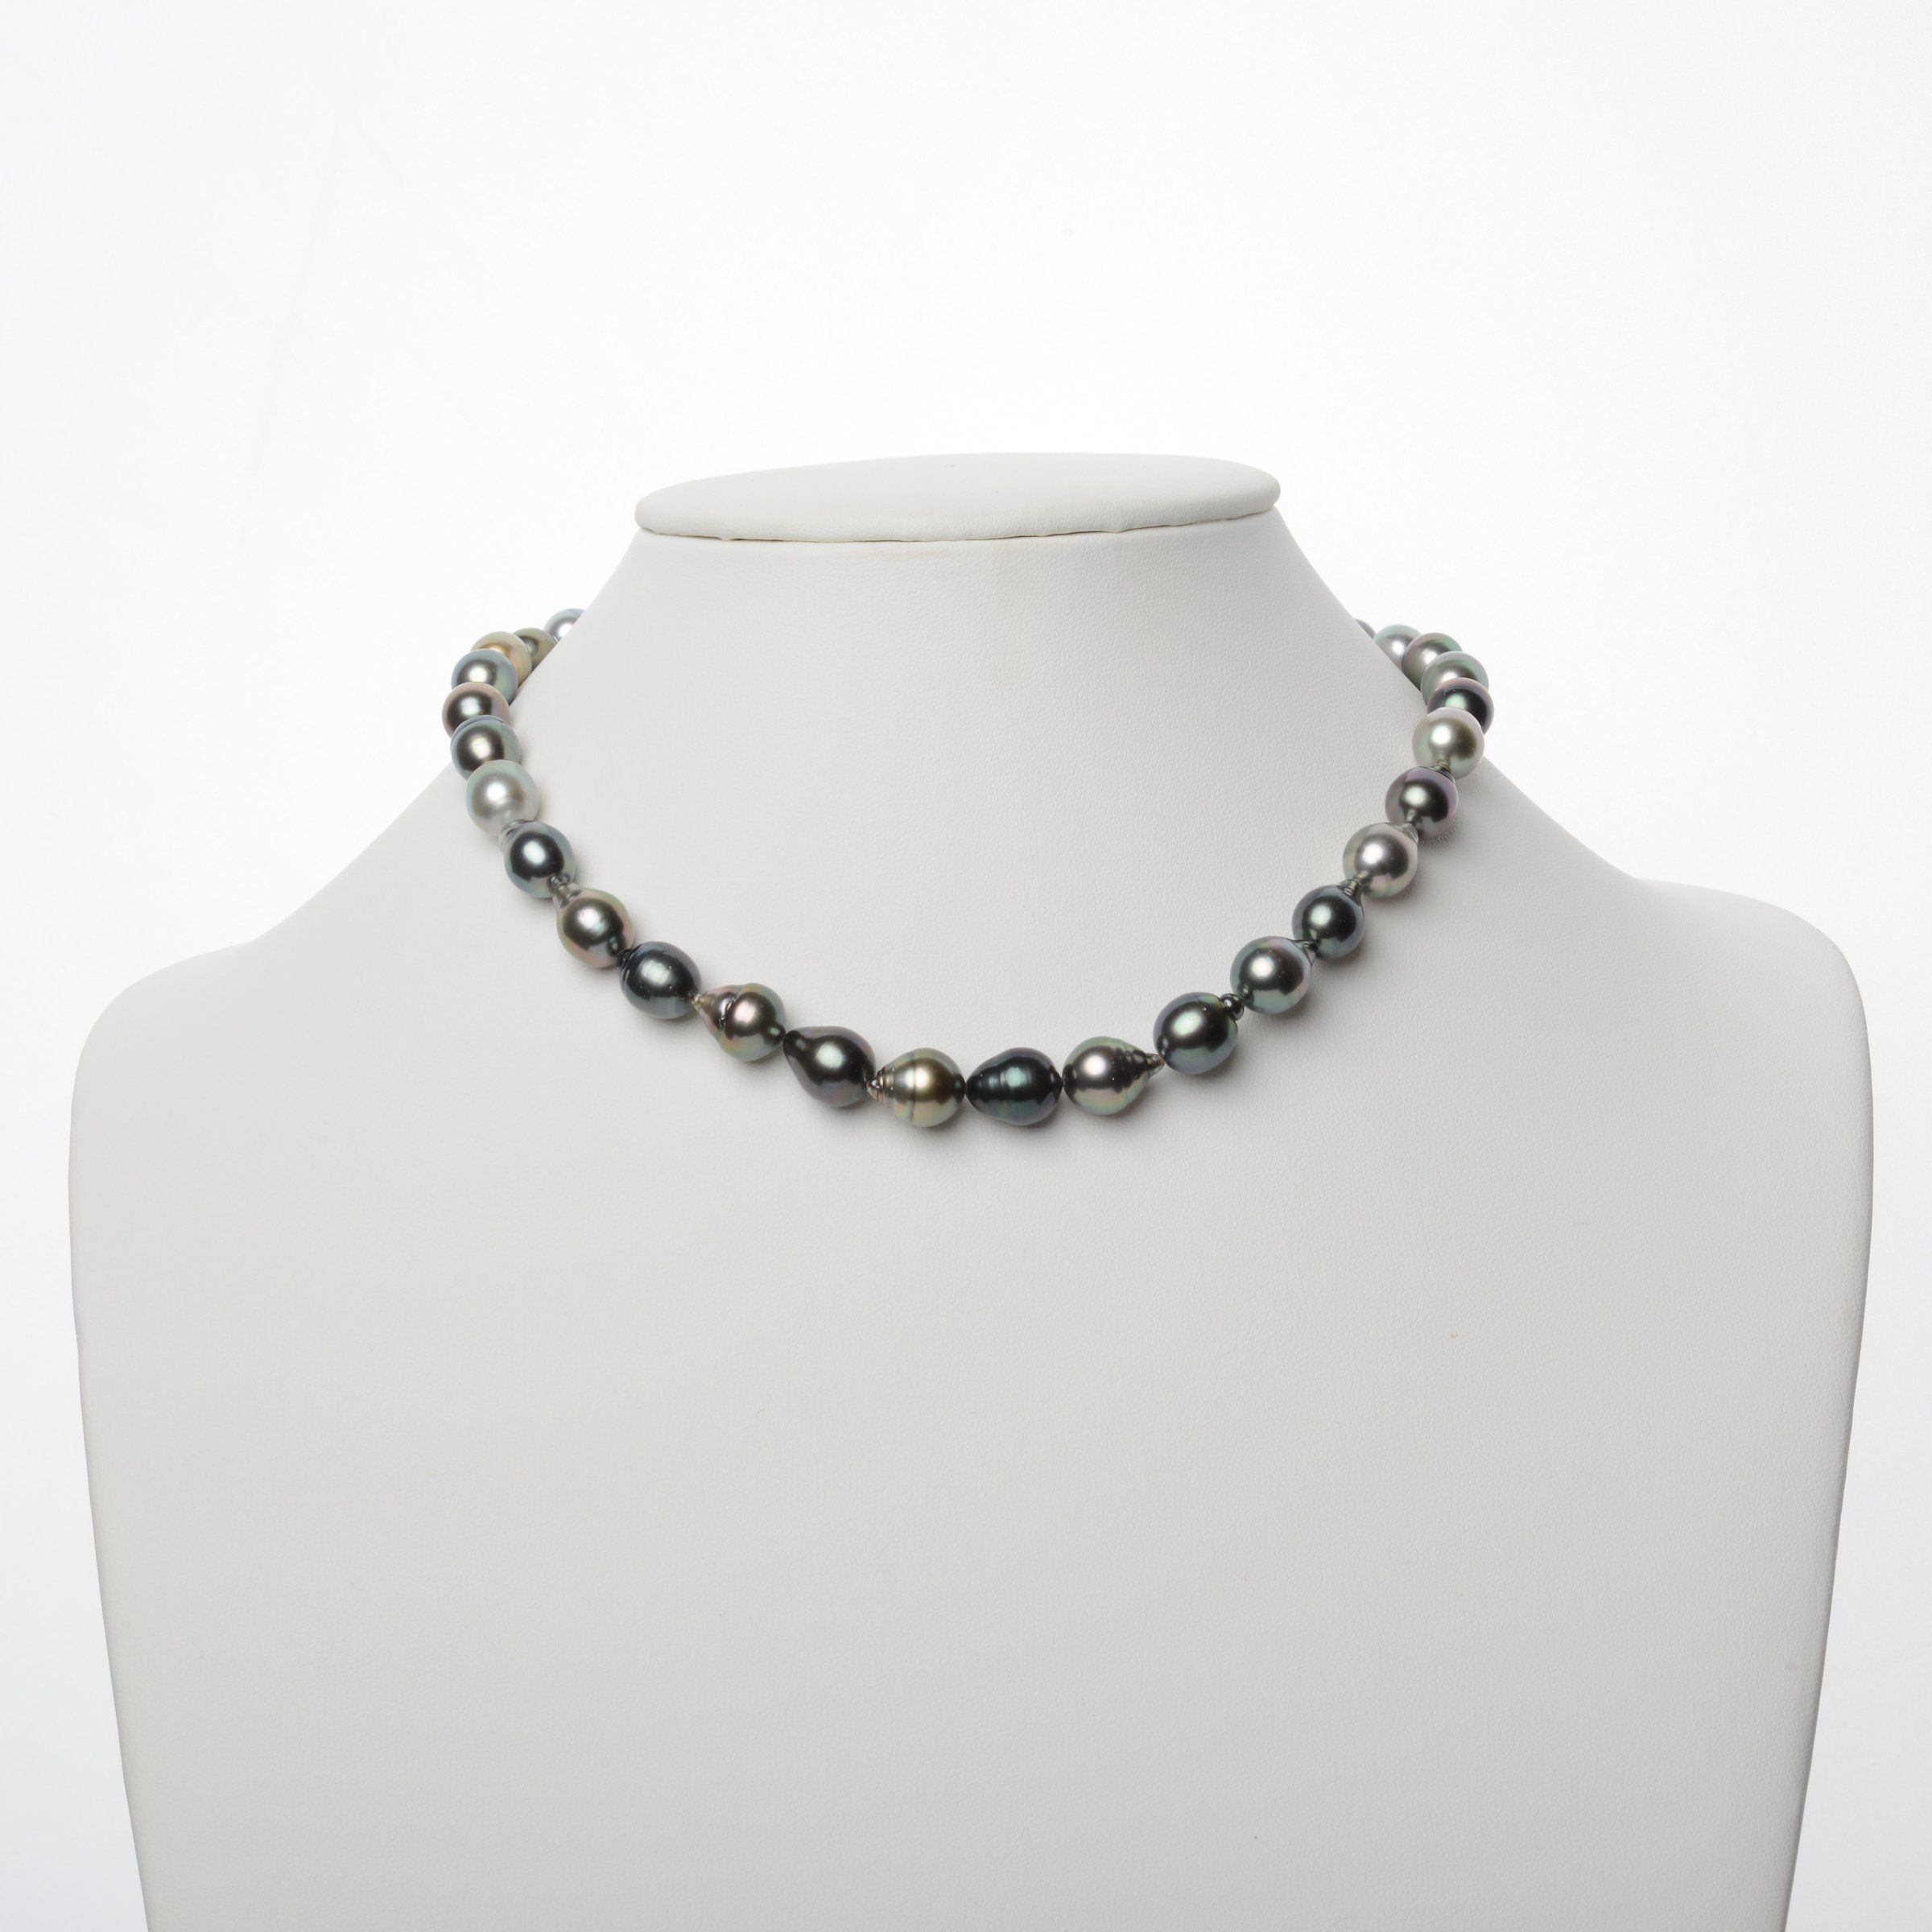 7.9-10.4 mm AAA Tahitian Baroque Pearl Necklace